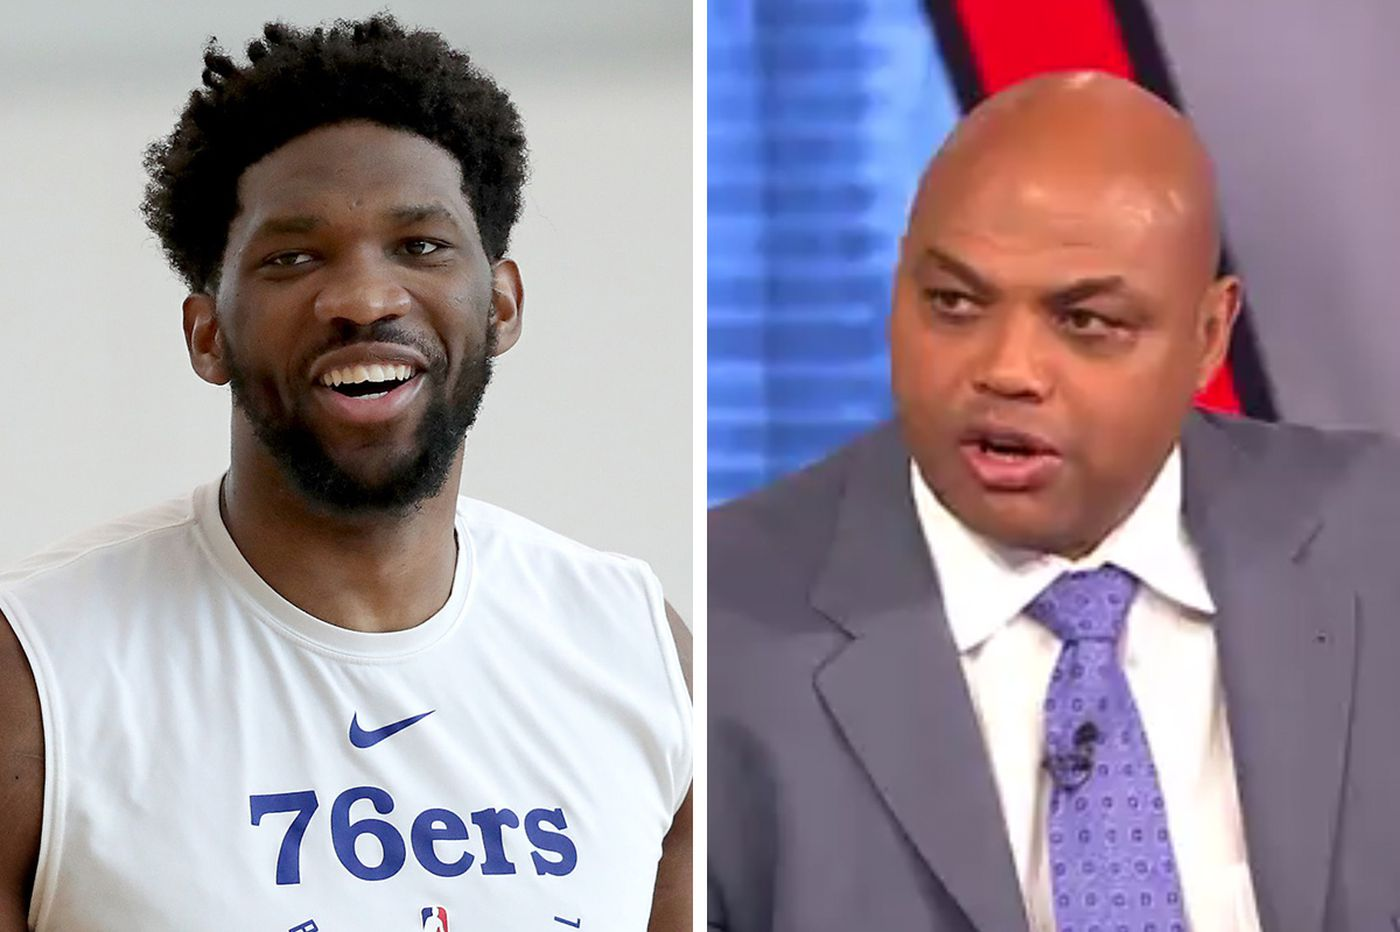 Charles Barkley praises Sixers' moves in NBA free agency